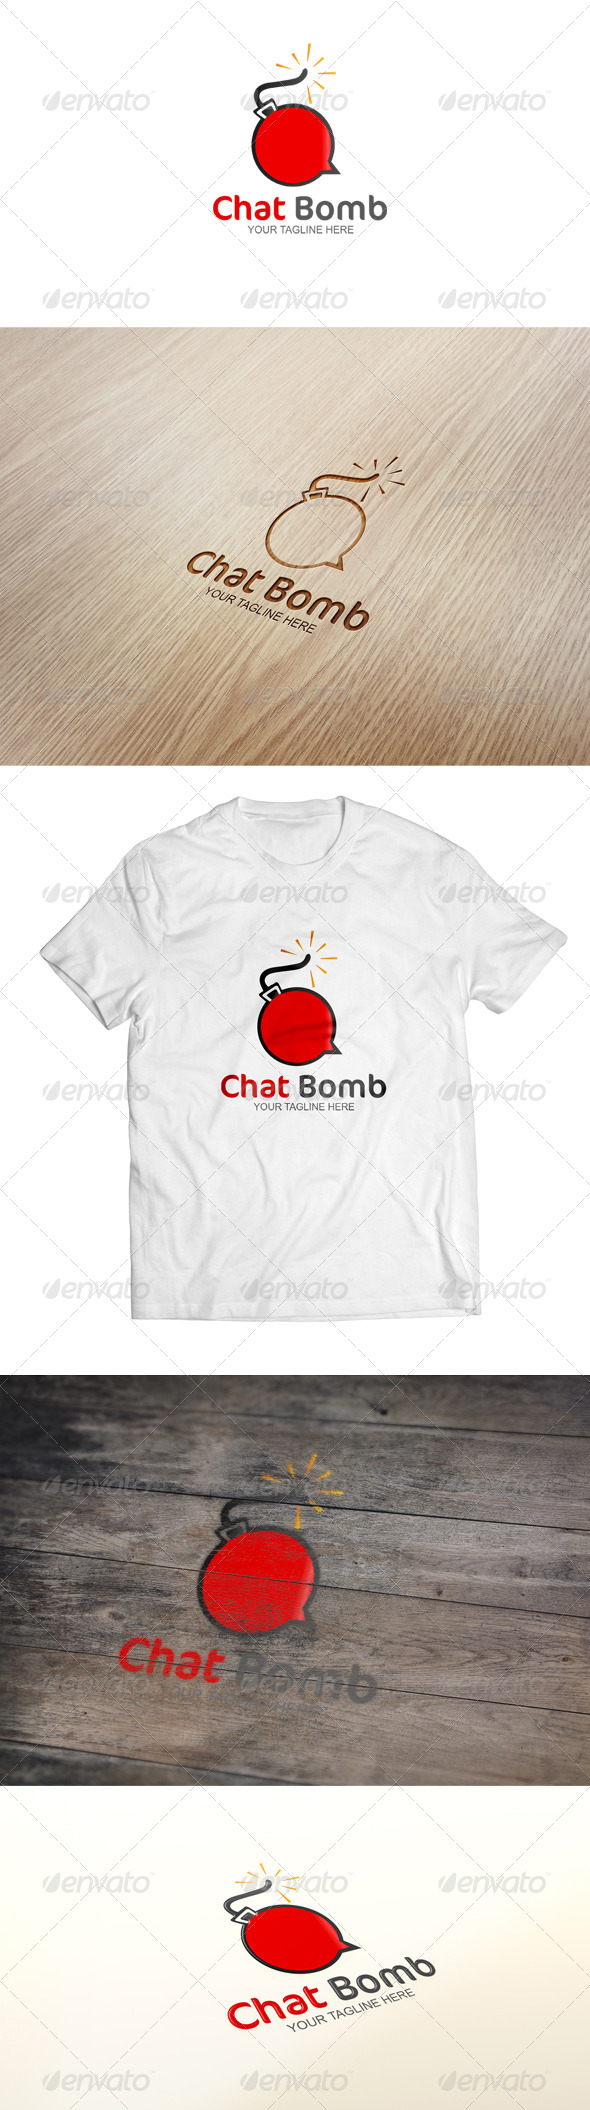 GraphicRiver Chat Bomb Logo Template 6500574